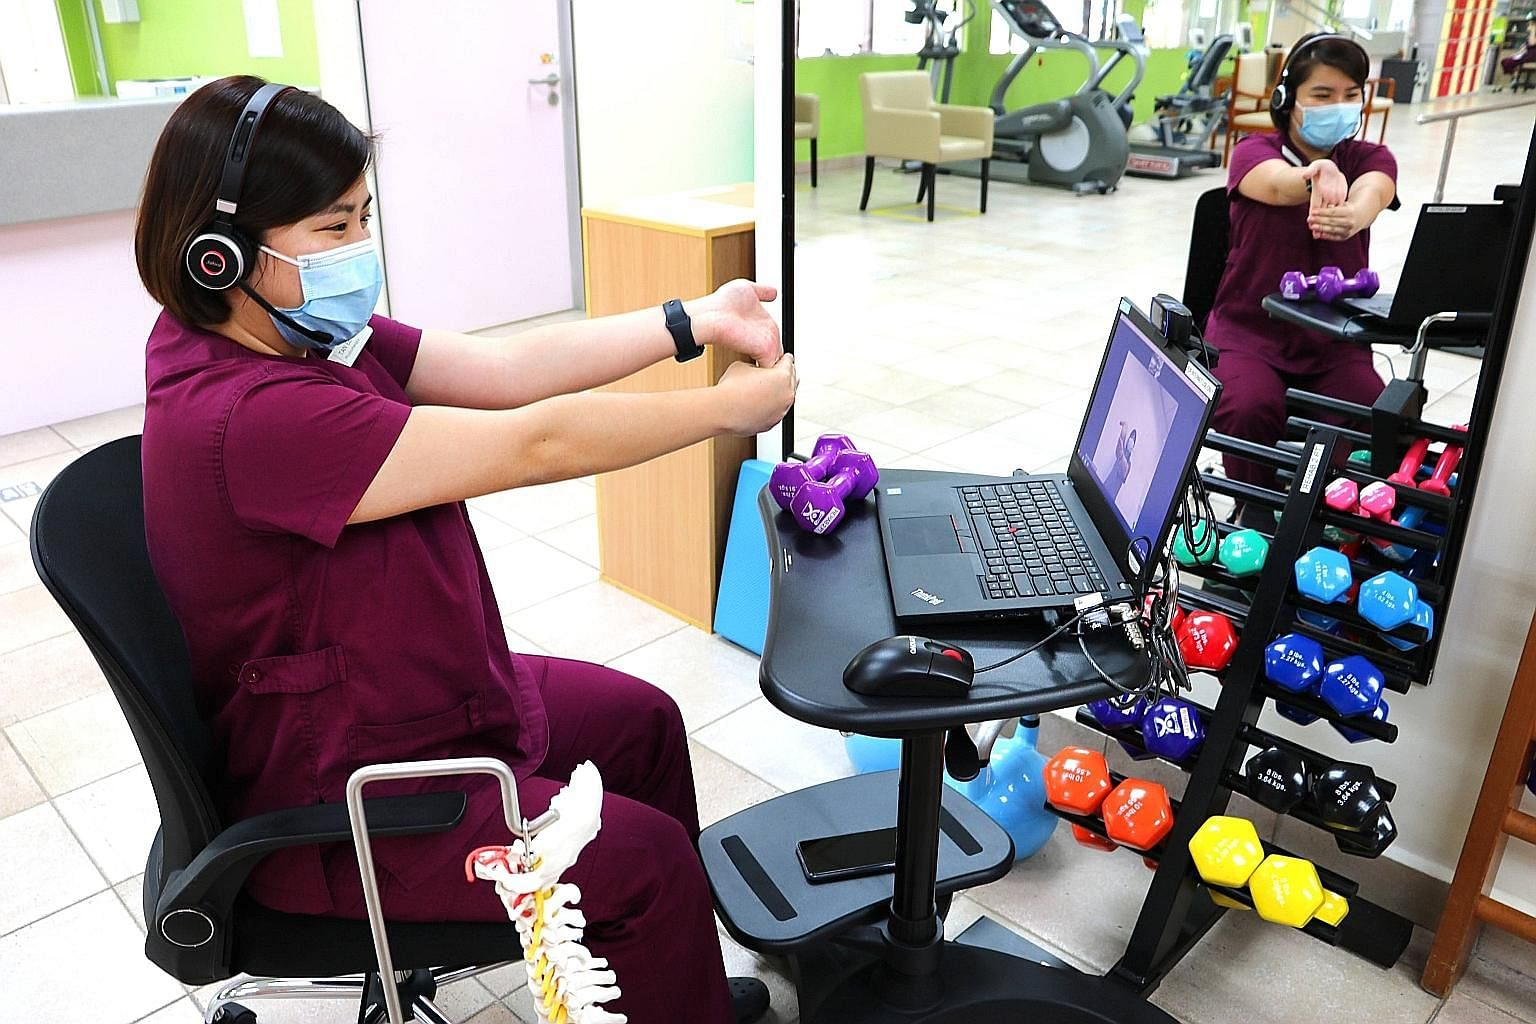 Above: Khoo Teck Puat Hospital's senior physiotherapist Jonathan Loh demonstrating an elbow-extension strengthening exercise using a light weight. Below: Tan Tock Seng Hospital's speech therapist Maranda Lim conducting language therapy with a patient